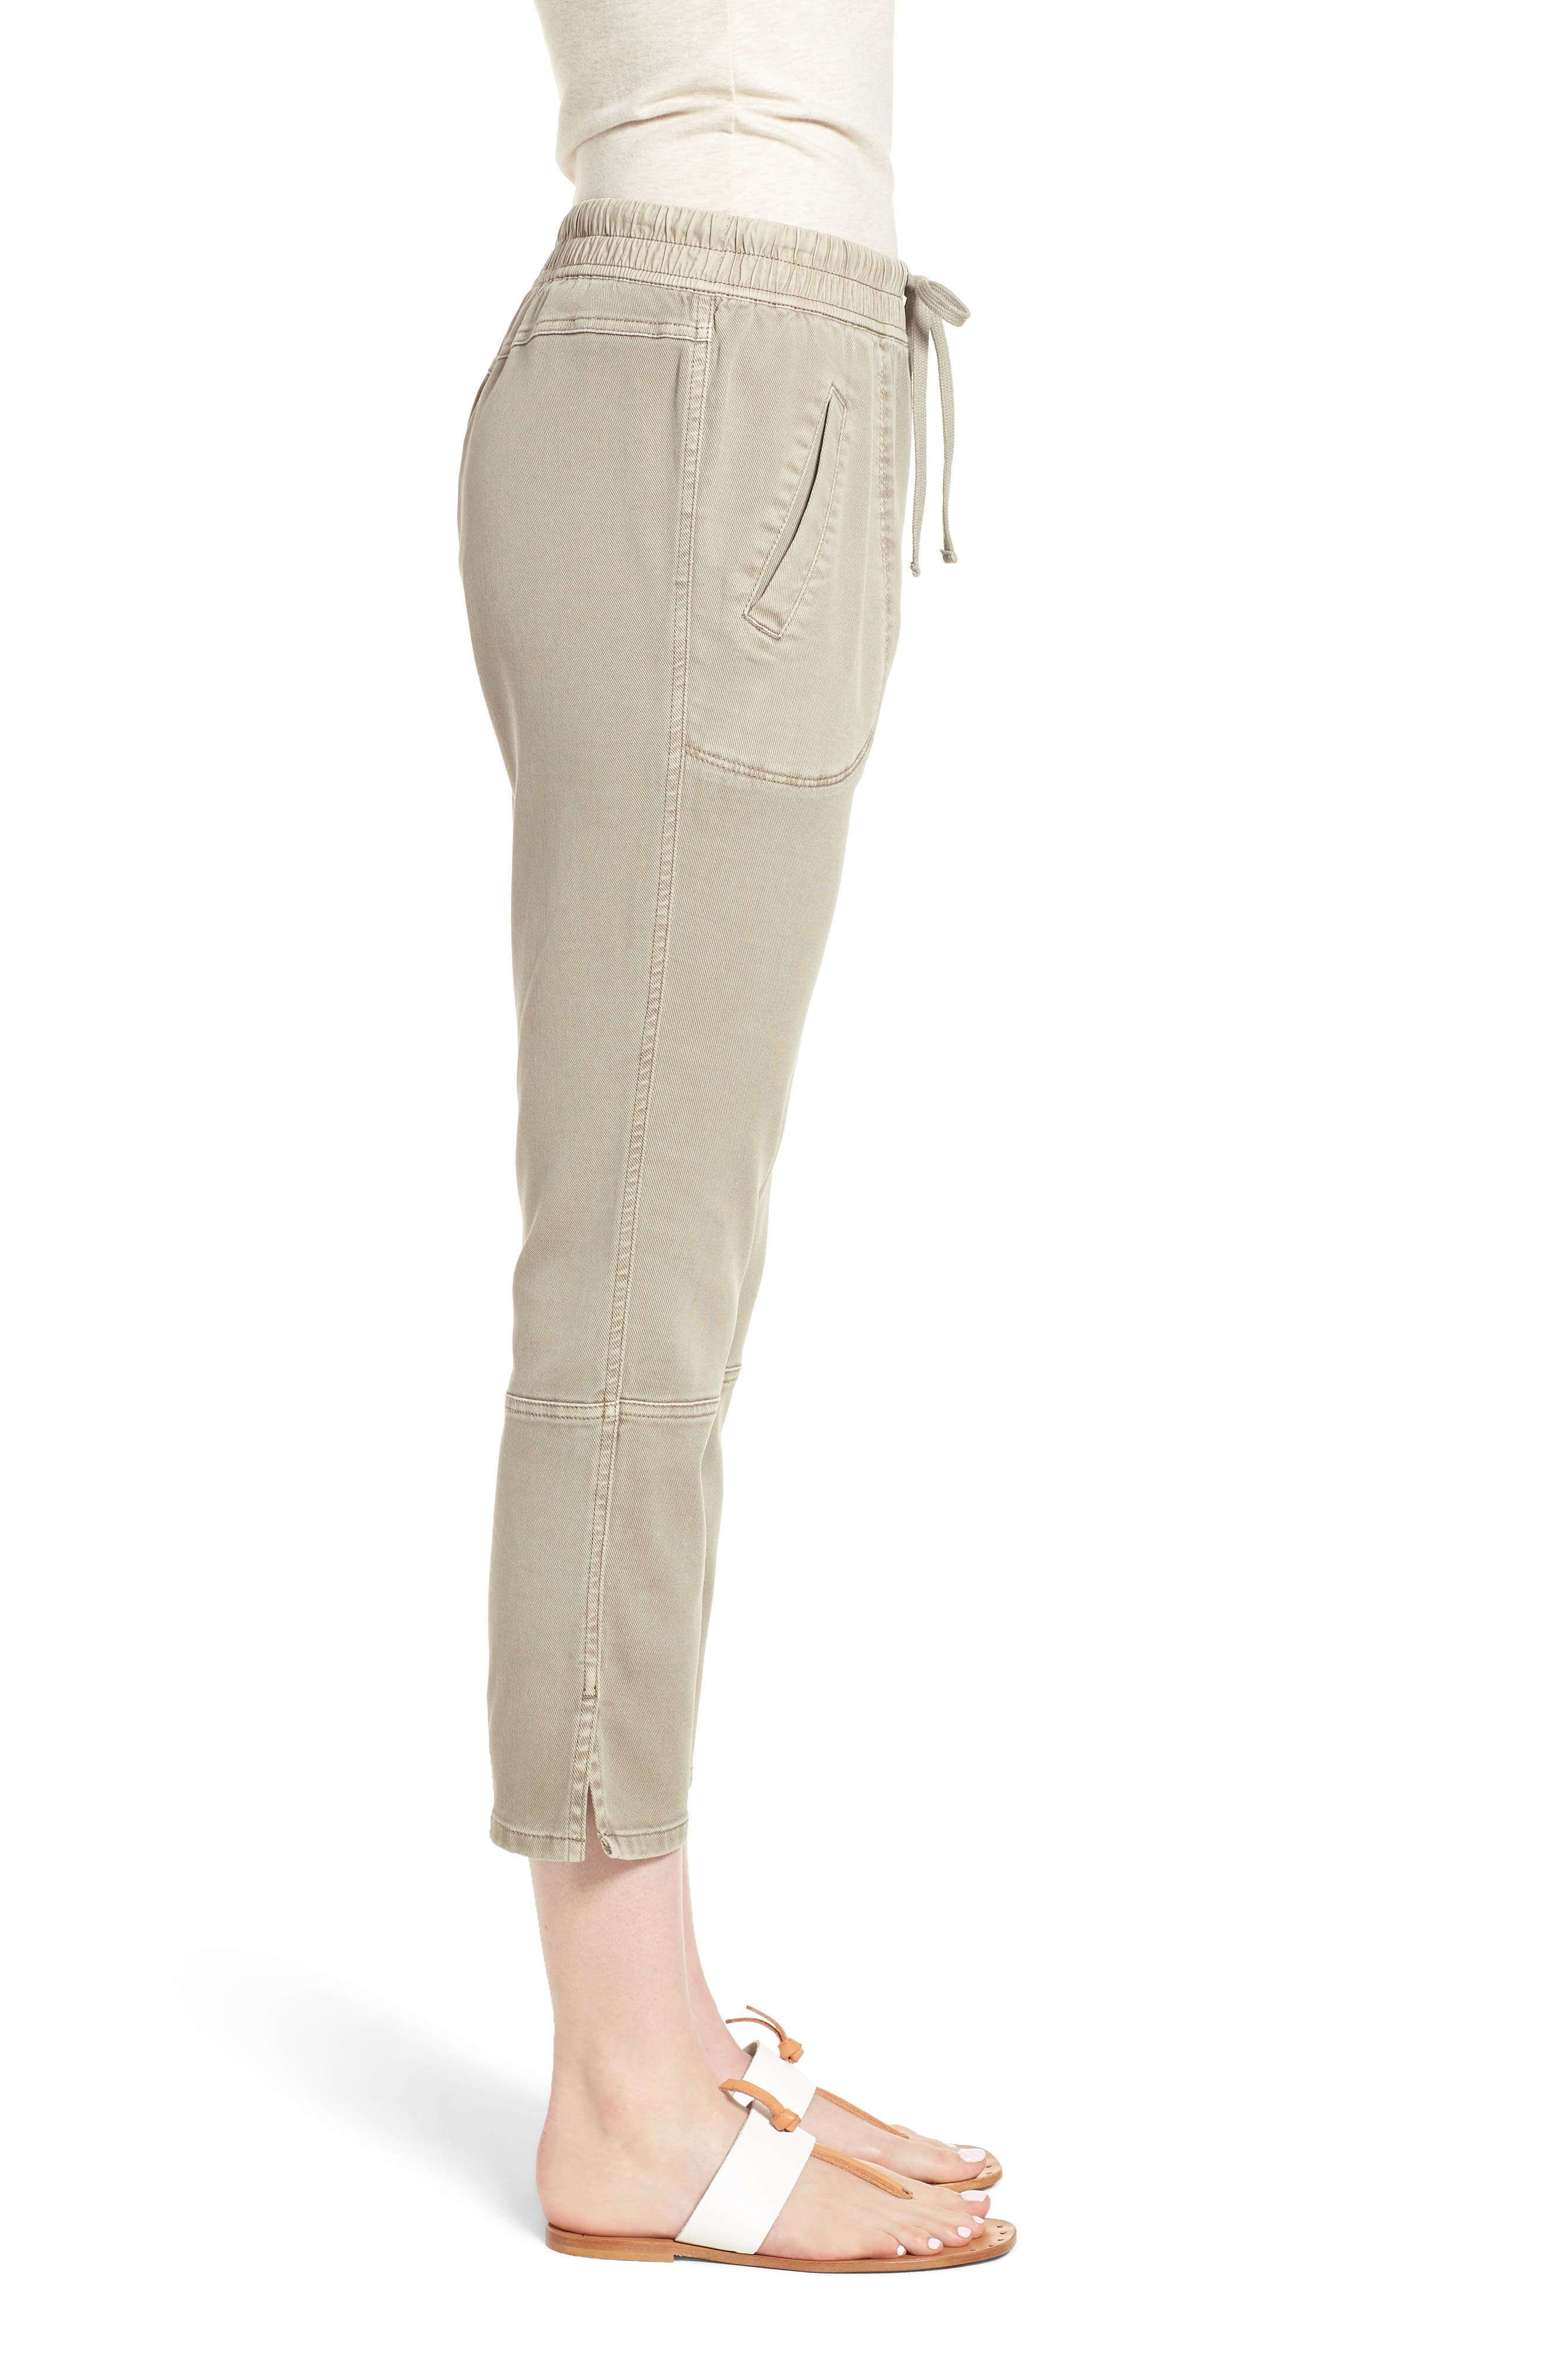 Open Road Ankle Pants,                             Alternate thumbnail 3, color,                             Flax